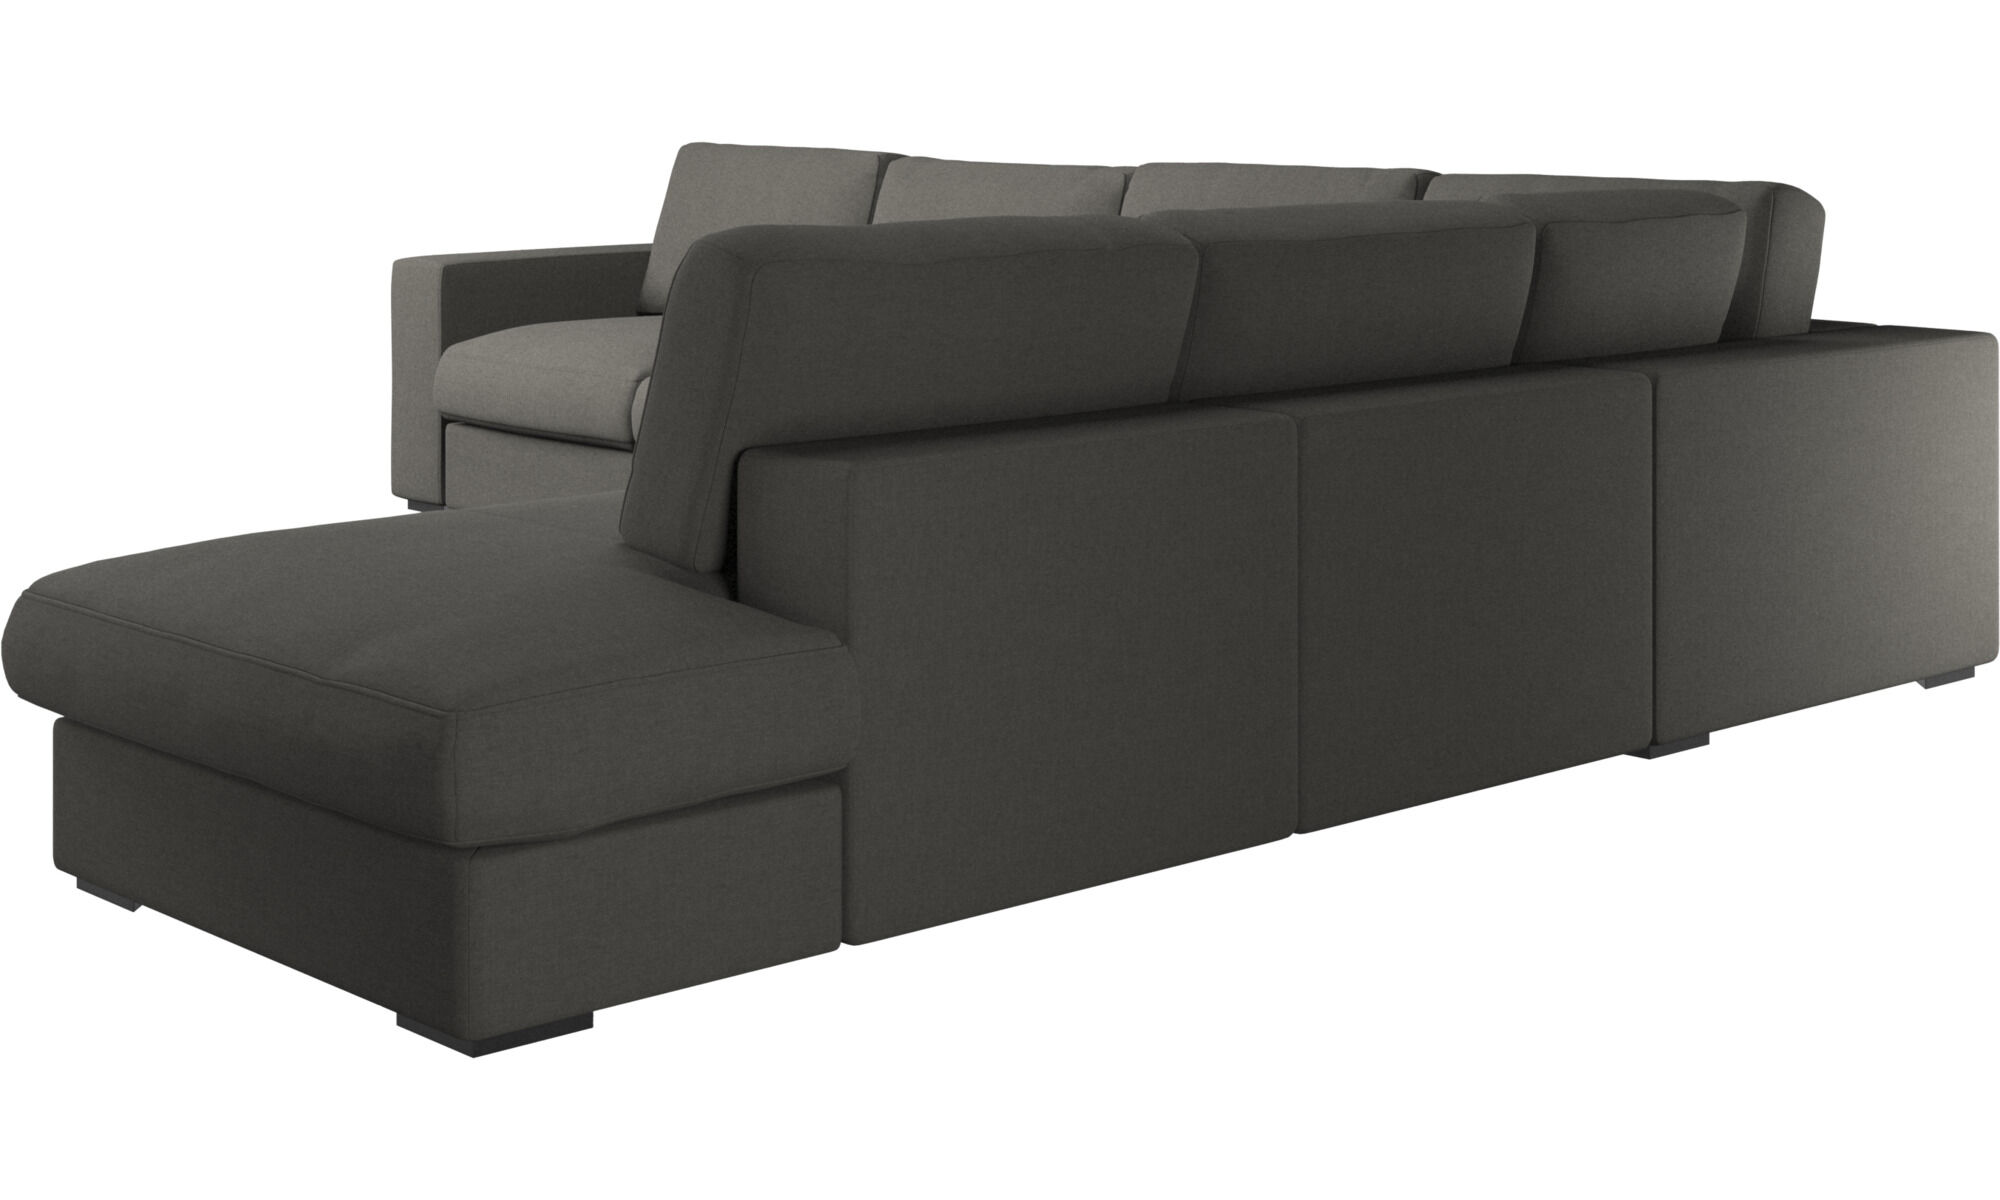 Corner sofas - Cenova corner sofa with lounging unit - BoConcept